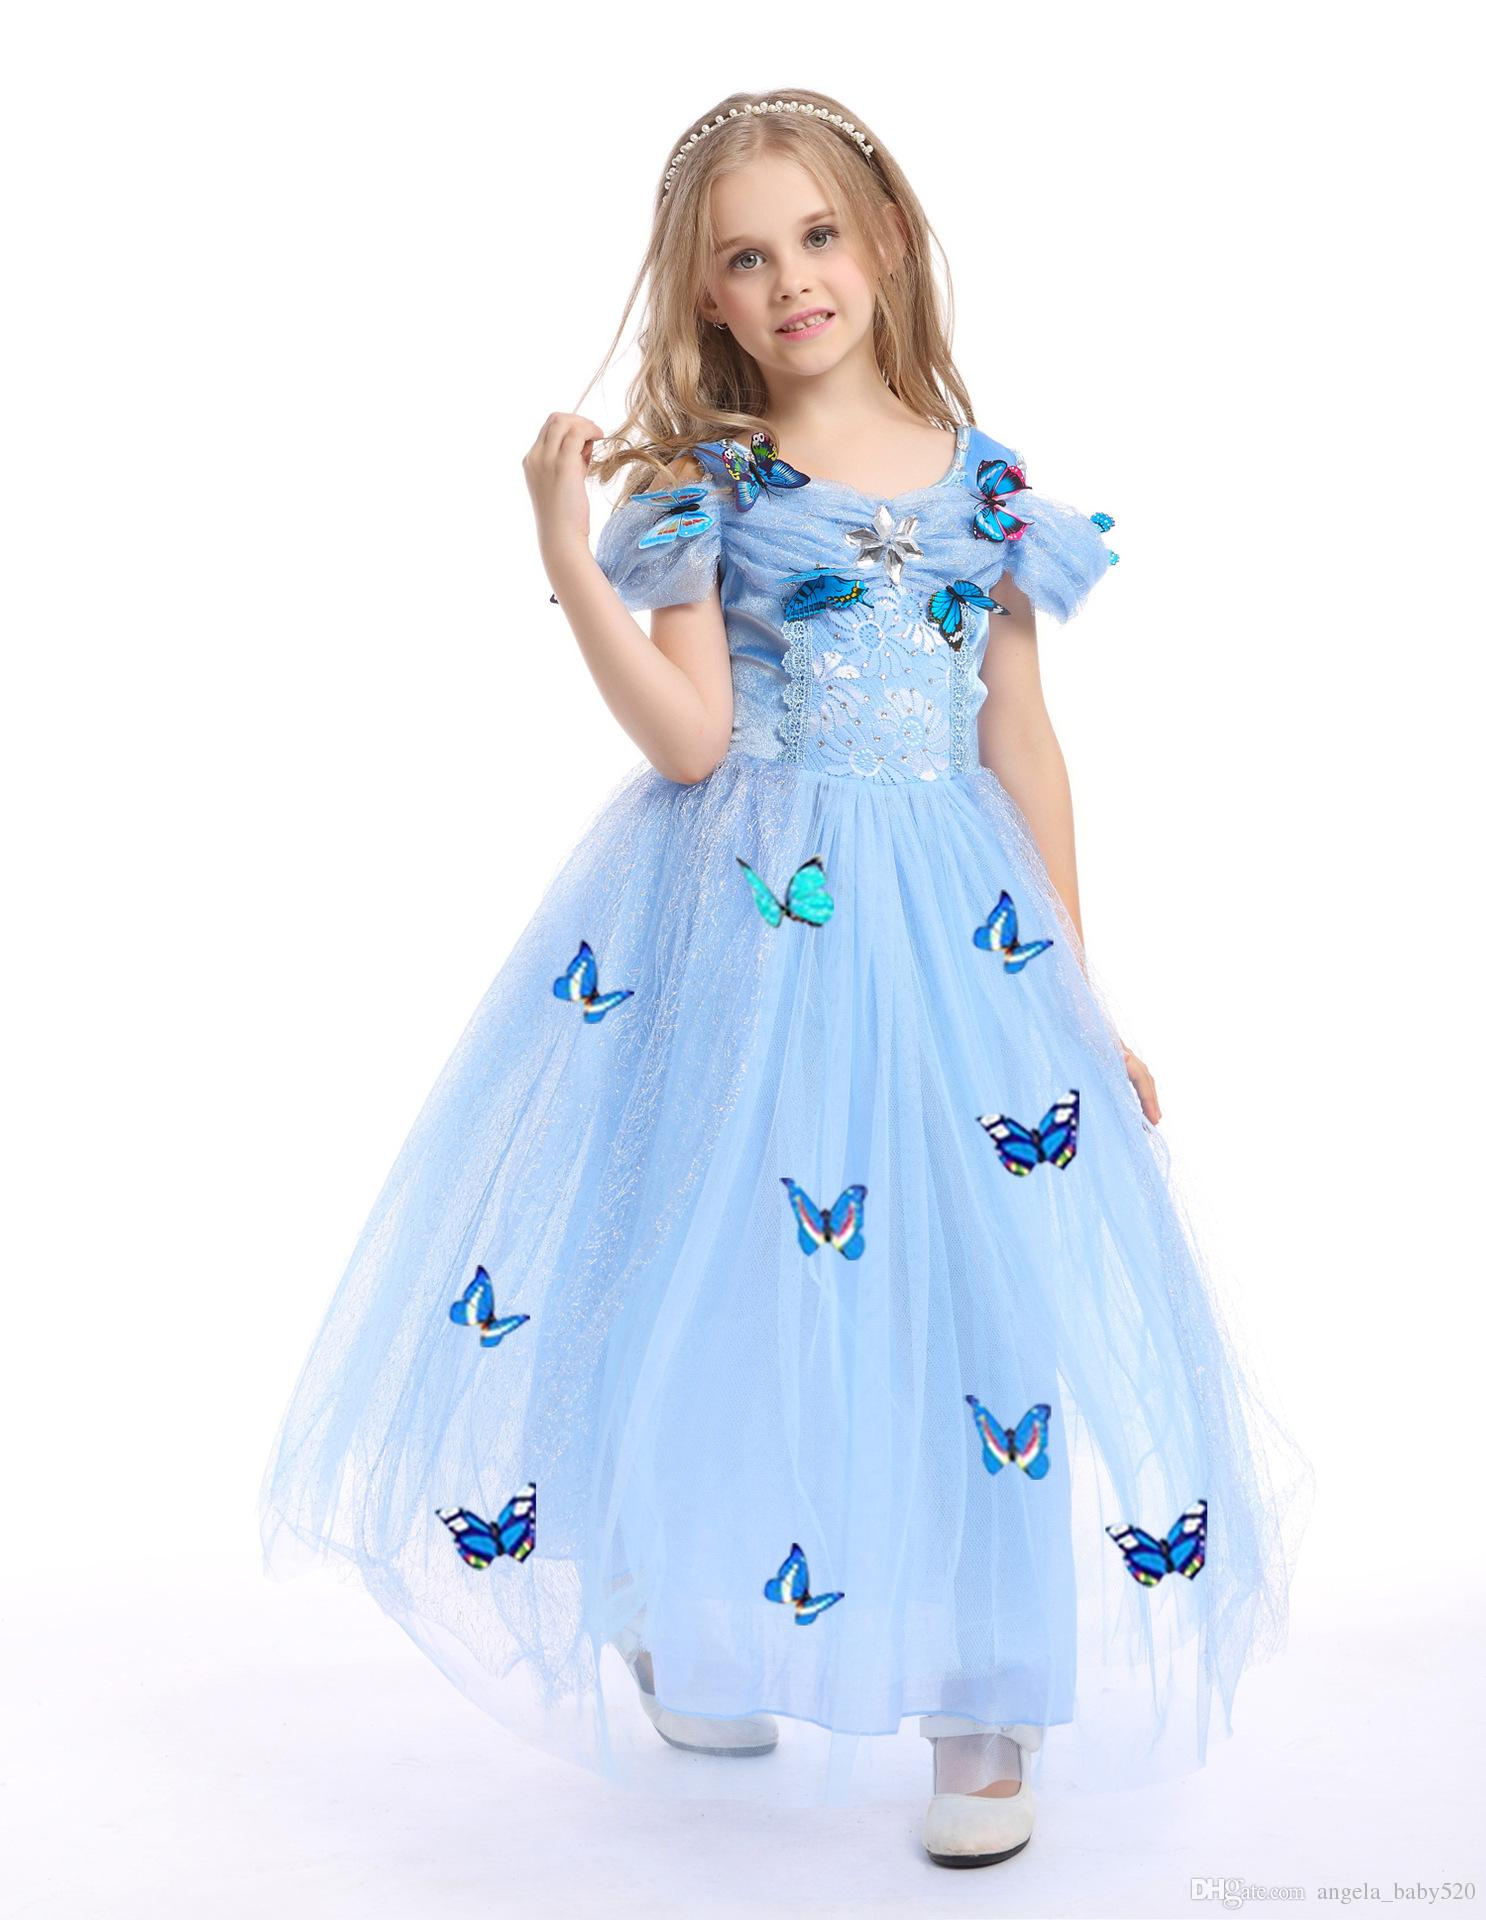 2018 Snowflake Diamond Dress 2018 Fancy Costumes For Kids Blue Gown